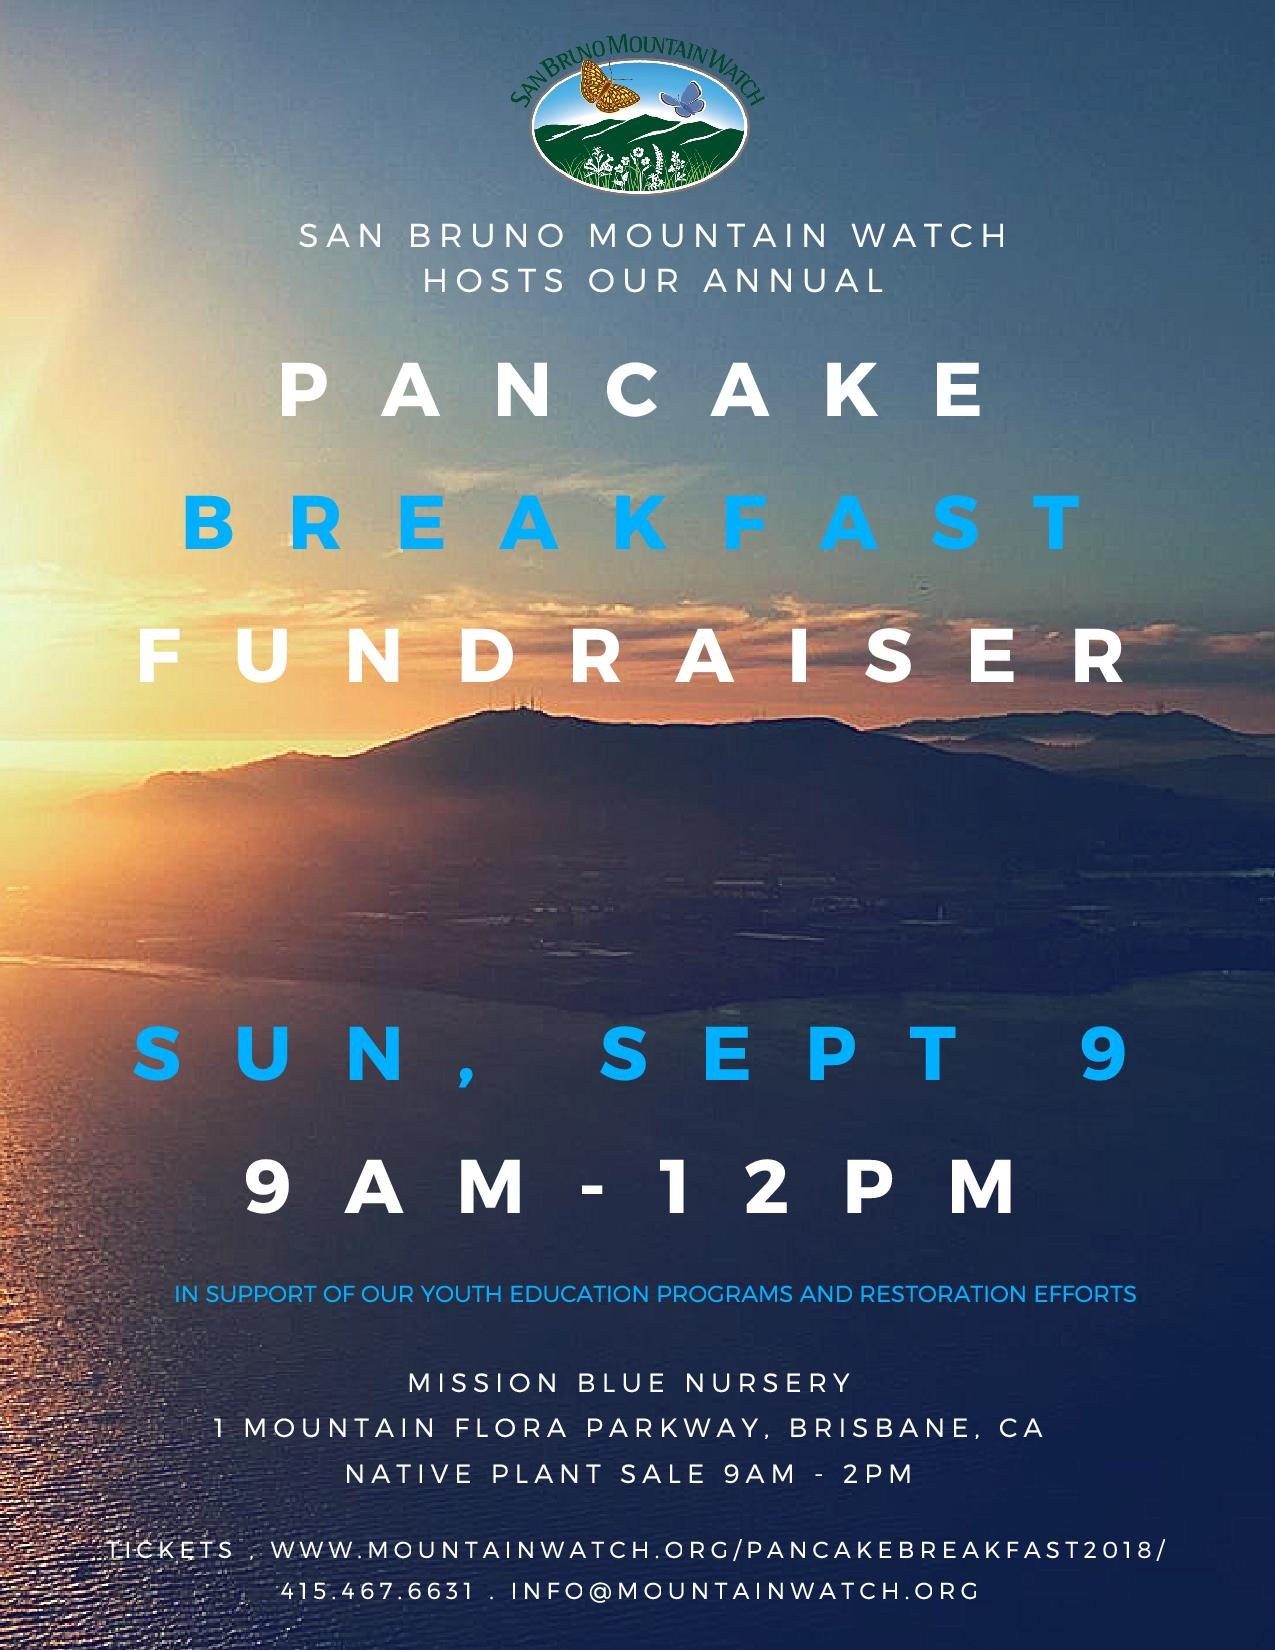 San Bruno Mountain Watch Annual Pancake Breakfast and Plant Sale Sept 9th